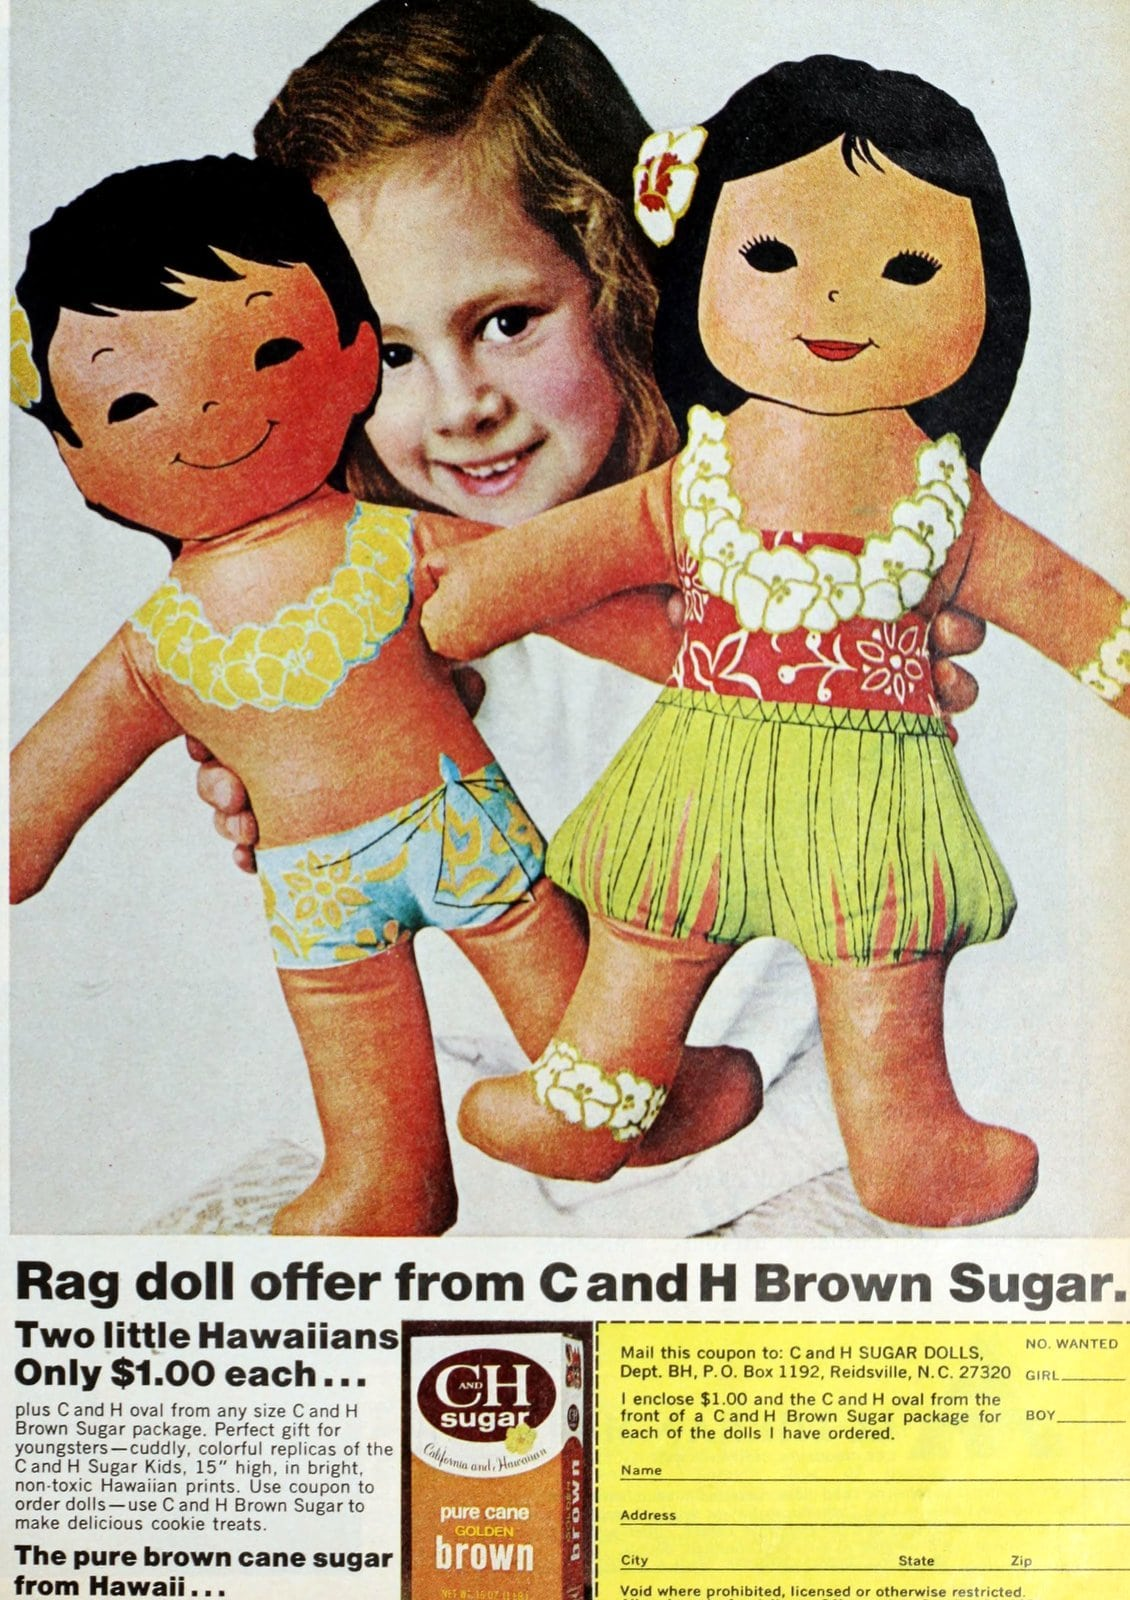 C and H sugar rag doll toy offer (1972)